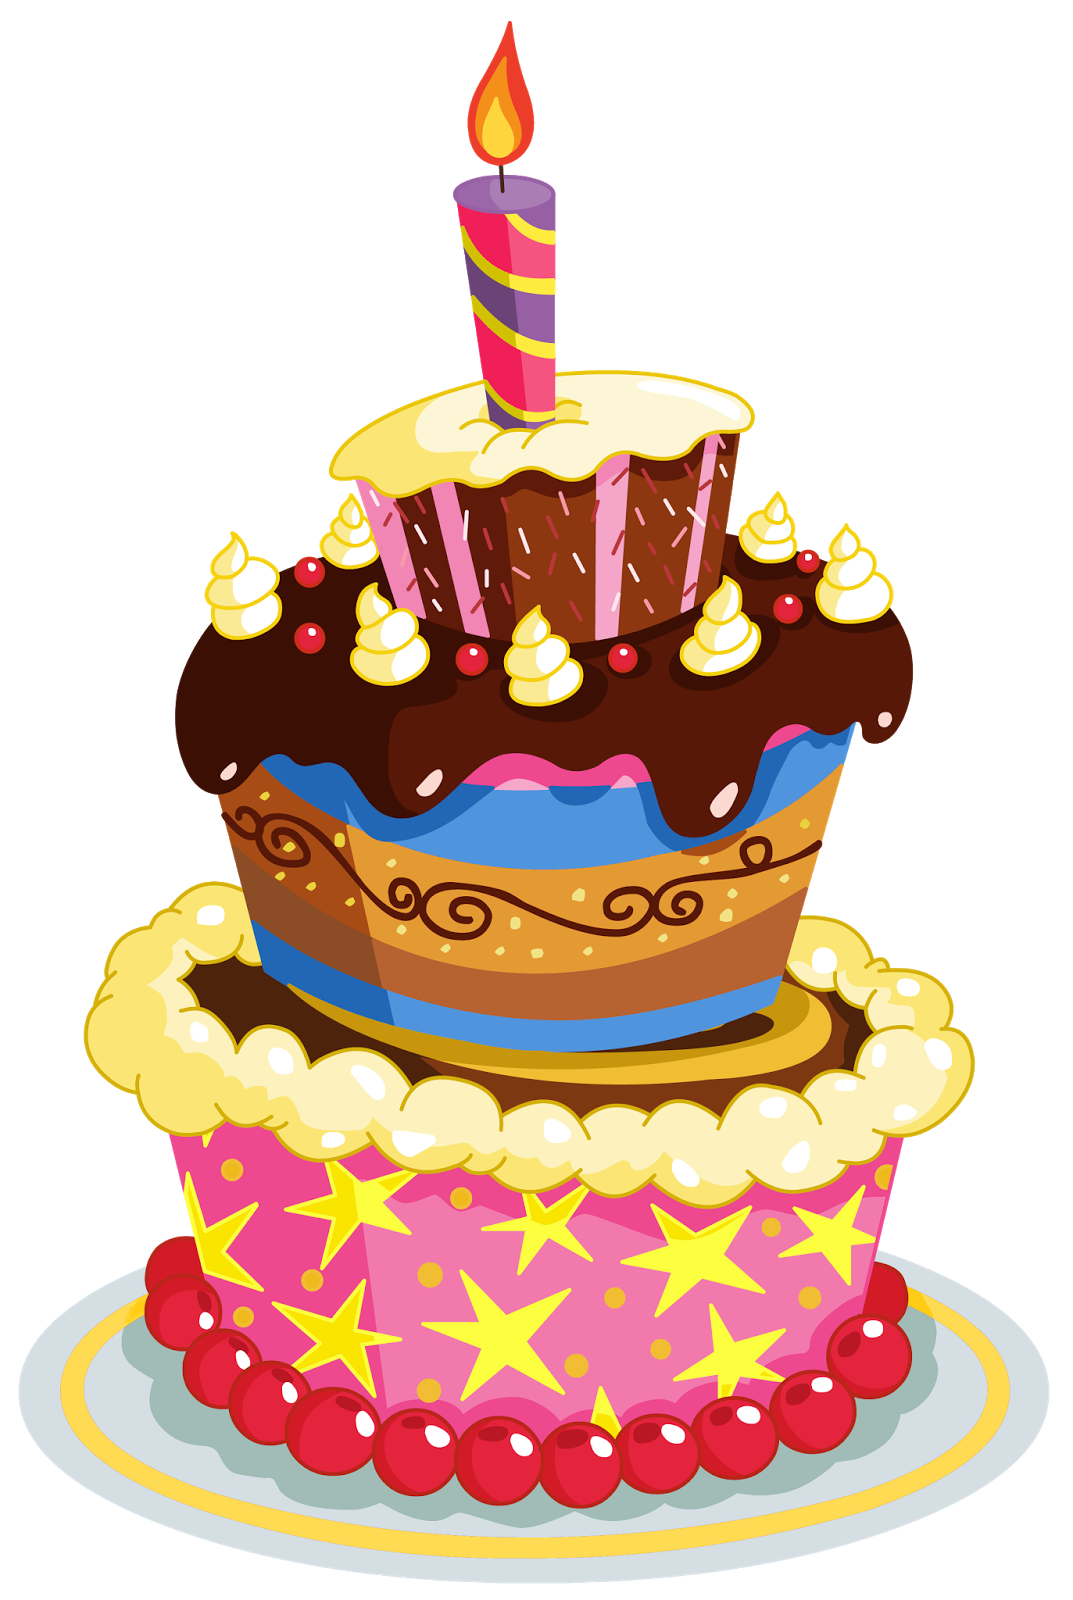 Poetry clipart illustration. Happy birthday graphics clip